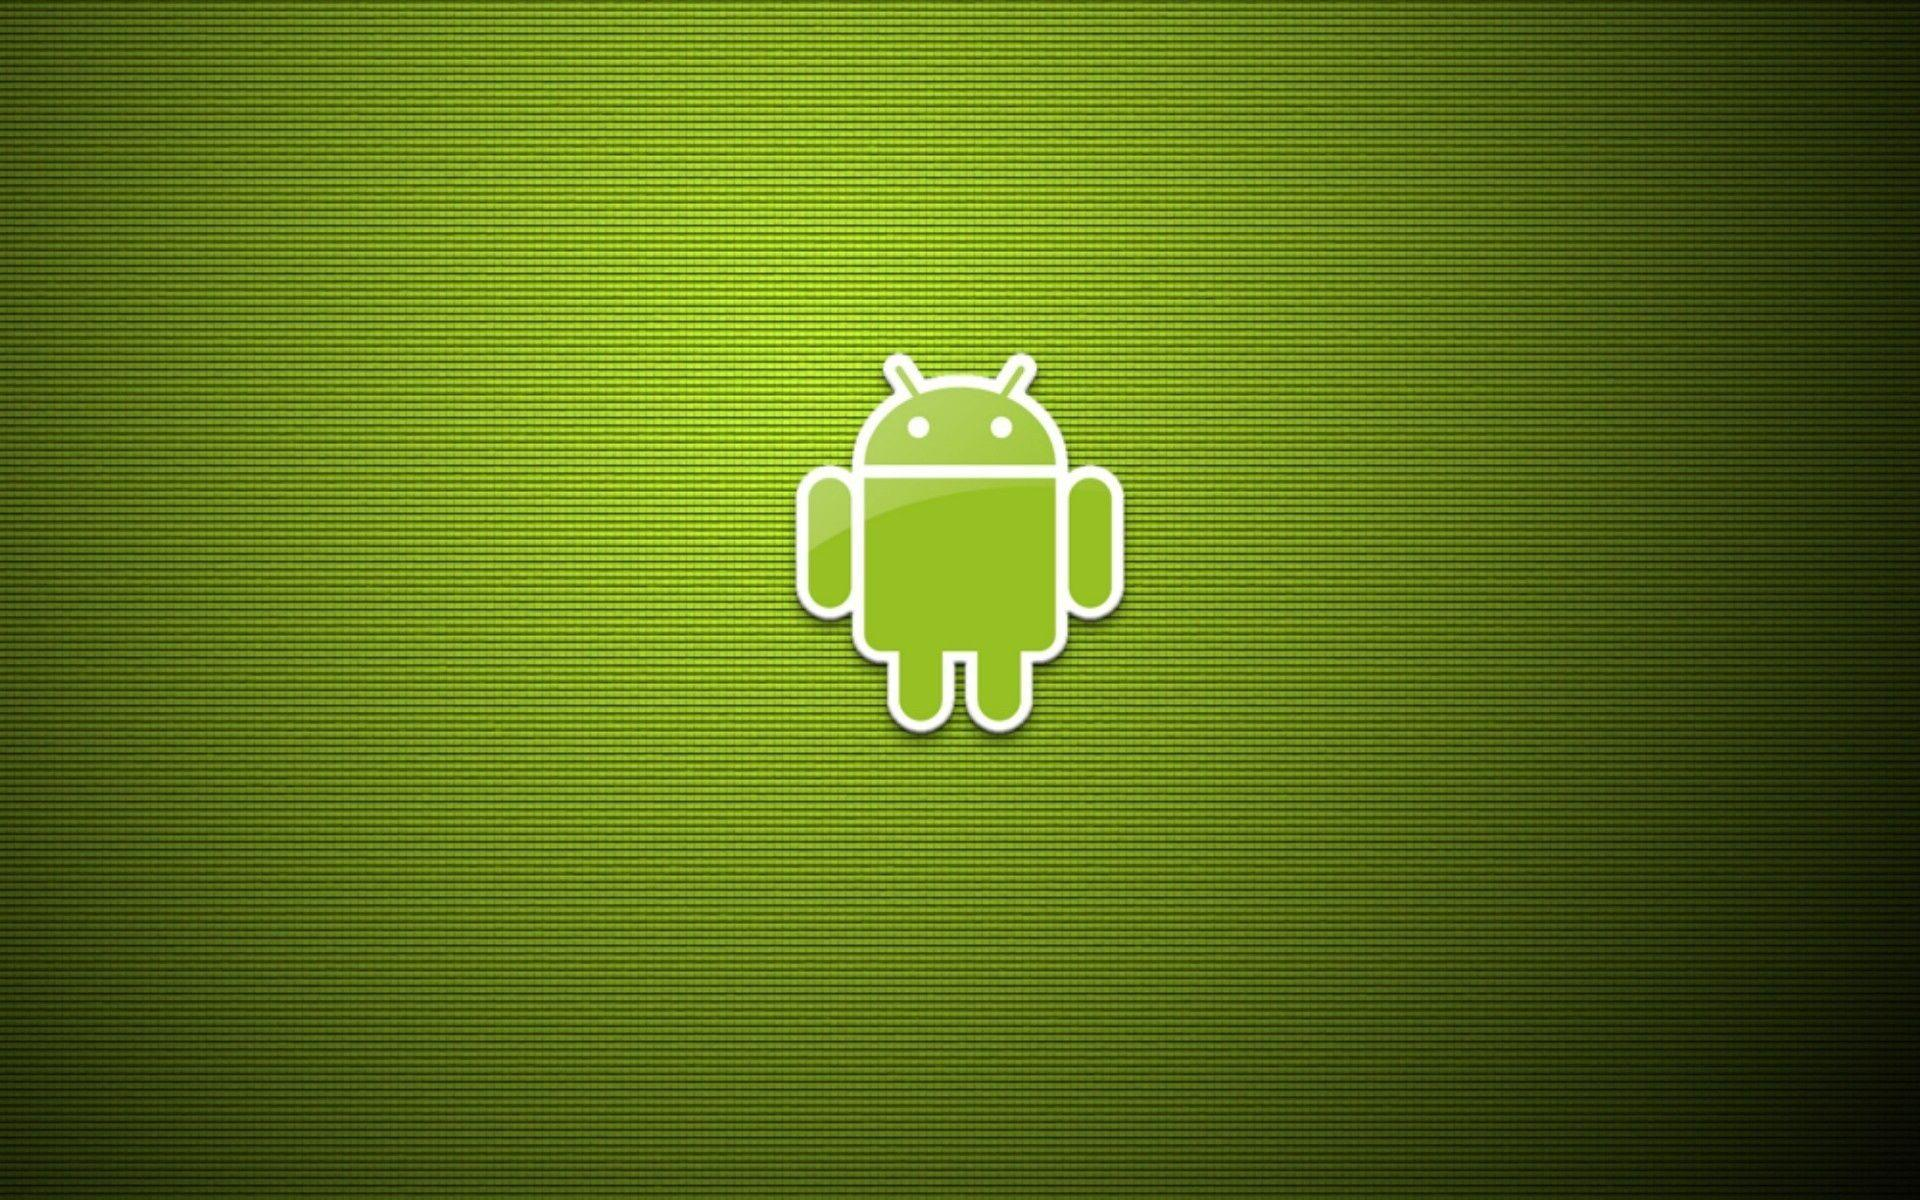 Android Logo Wallpapers.